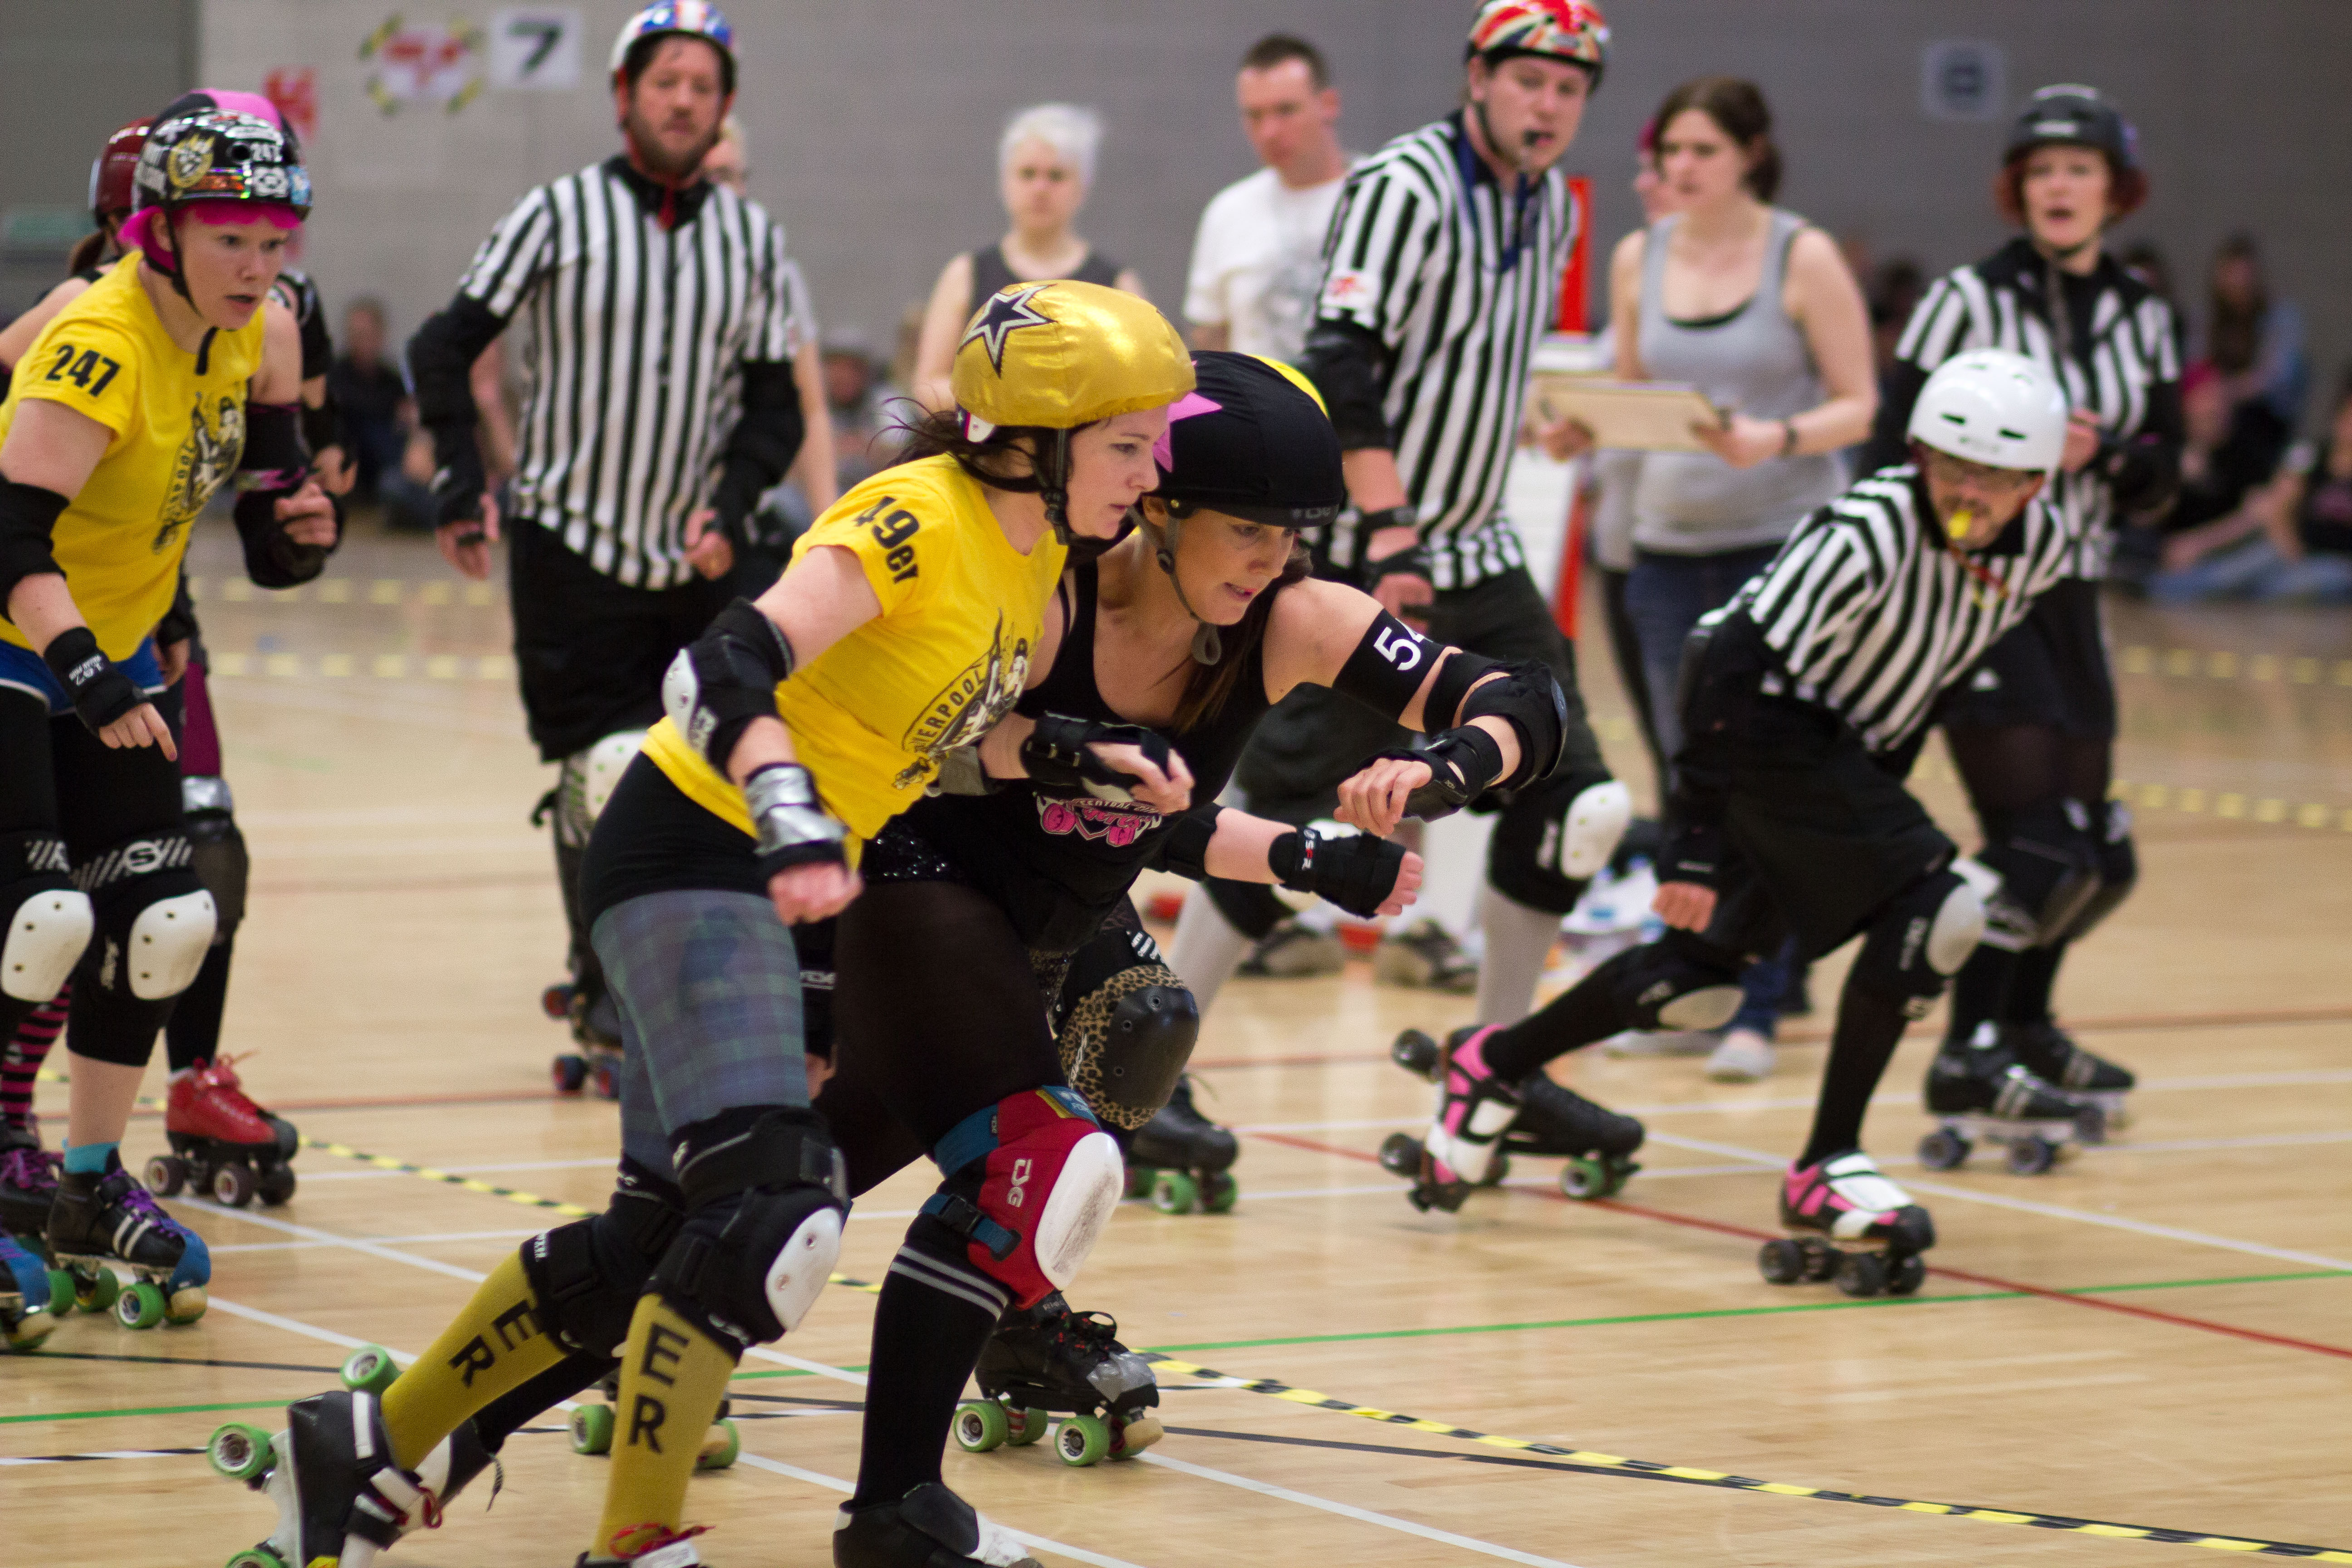 Roller skating liverpool